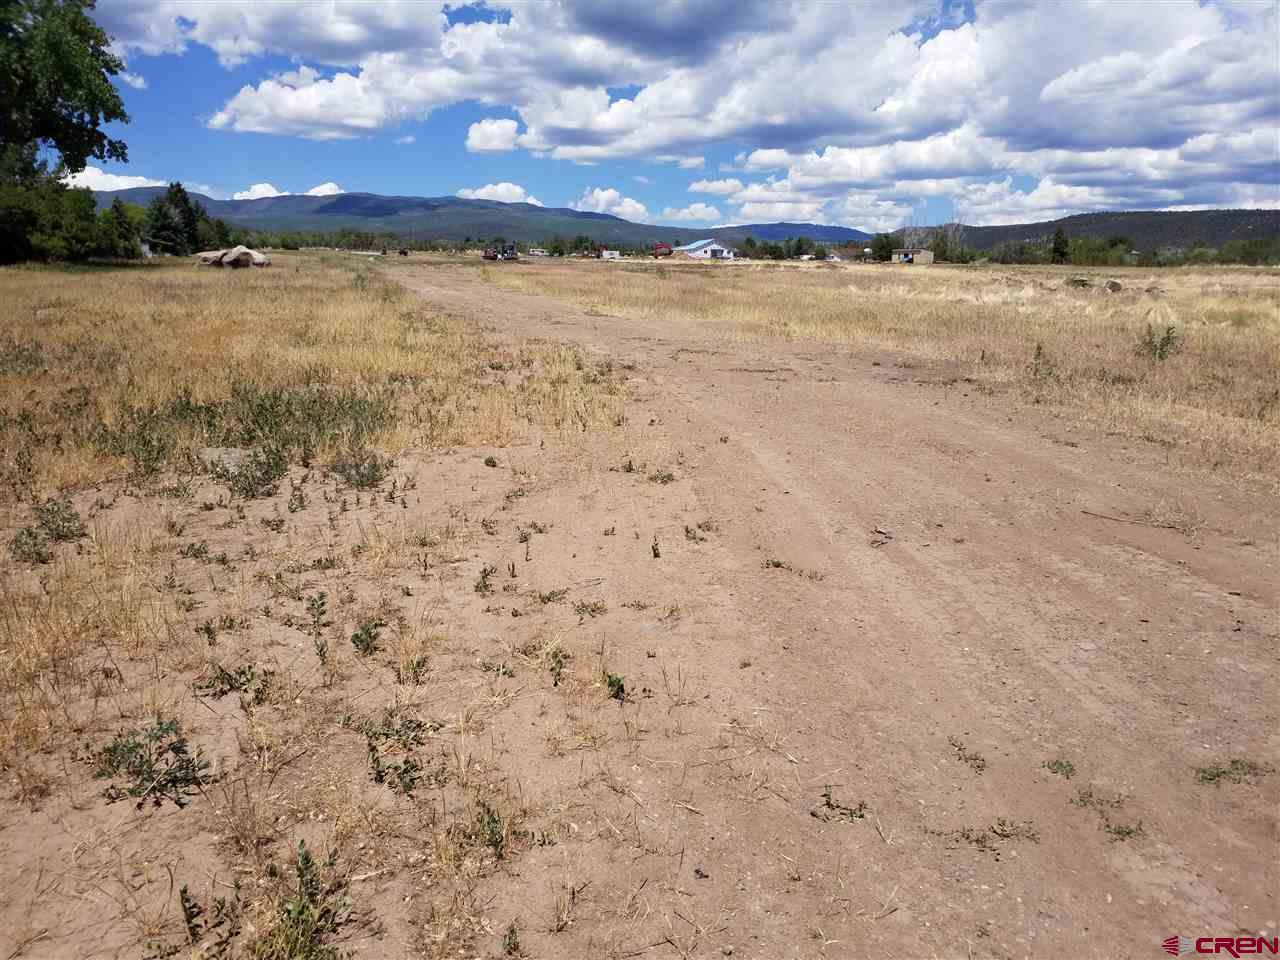 ATTENTION LAND DEVELOPERS! Opportunity is knocking with this exceptional 5 acre parcel, zoned R-2, in the Town of Cedaredge.  Purchase price INCLUDES 22 PAPER SEWER TAPS!! The sewer line is already installed and there is easy access to all the other necessary utilities.   Zoning for this parcel allows for a medium density development of patio homes, duplexes, triplexes and multi-family.  Medium density is considered (6) dwelling units per net acre with a minimum lot area of 7,000 square feet per dwelling unit. Duplexes and triplexes shall have a minimum lot area of 4,000 square feet per dwelling unit and multifamily dwellings shall have a minimum of 3,500 square feet per dwelling unit. Leave your legacy, help eliminate the housing shortage, and increase your wealth with a personalized planned unit development in this distinctive community that boasts of boundless outdoor recreation and a rich agriculture heritage.  Call for all the details.  **Contingent on final plat approval.